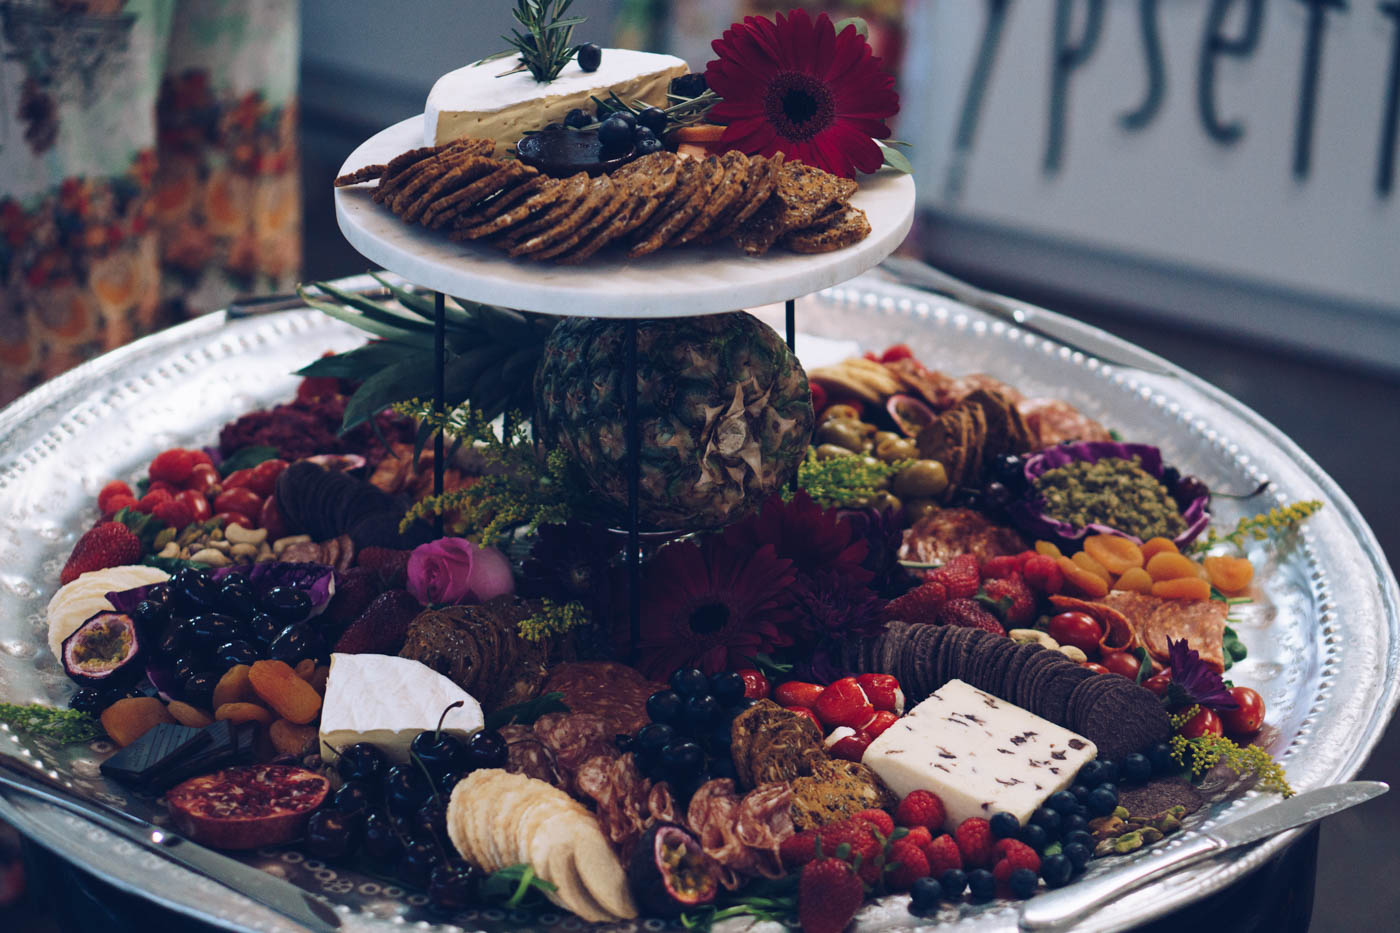 the_Collection_co_grazing_table_cairns_weddings_catering_medium_platter-25-2.jpg